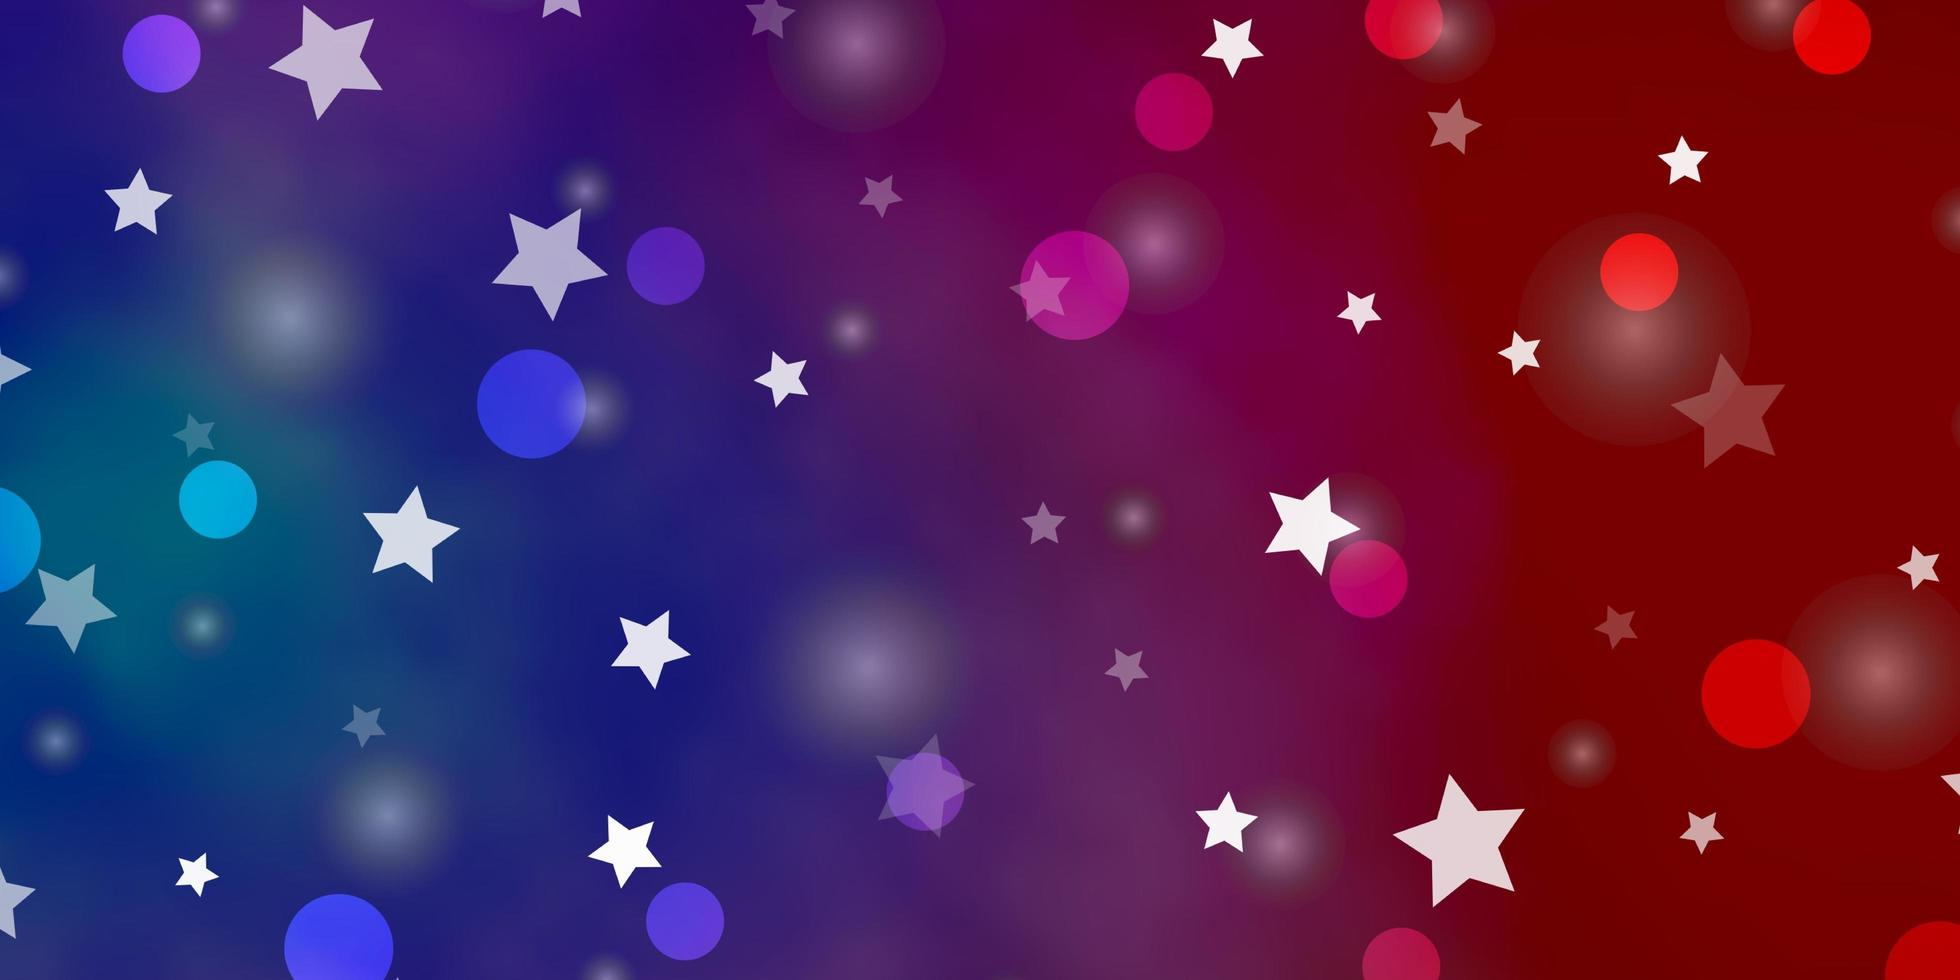 Light Blue, red texture with circles, stars. vector